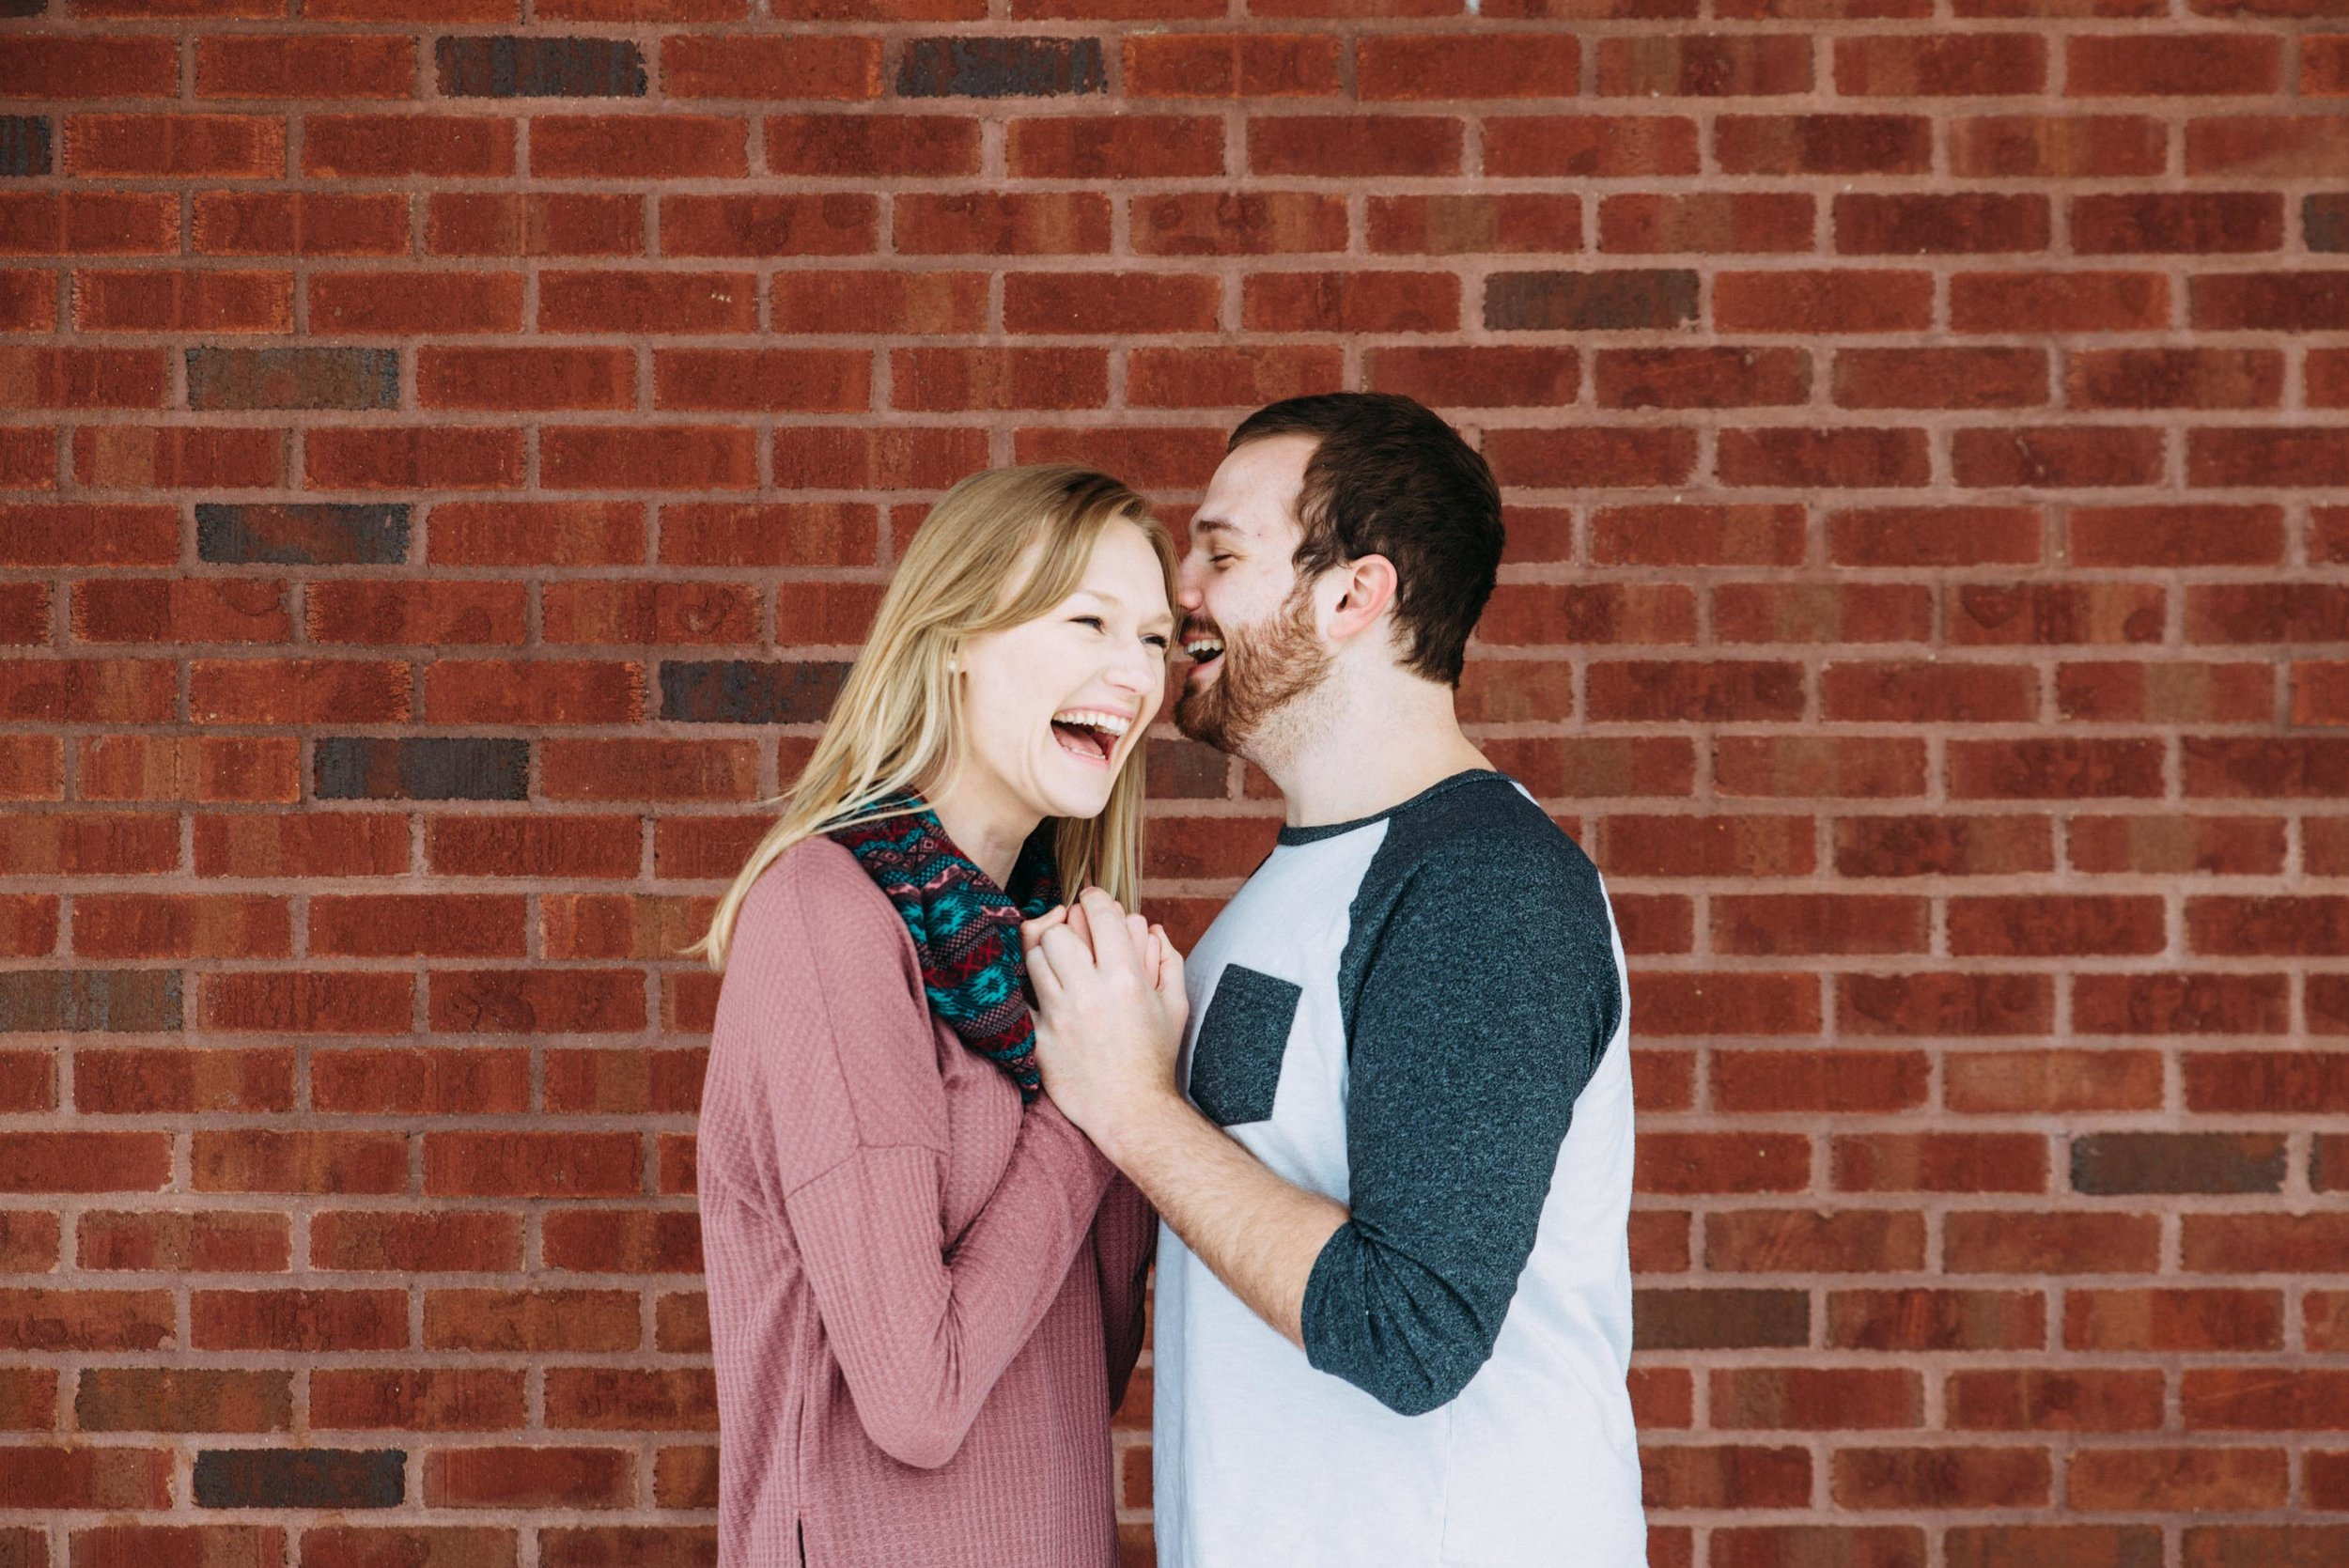 Cody_Mary_Saint_Paul_Winter_Engagement-1.jpg